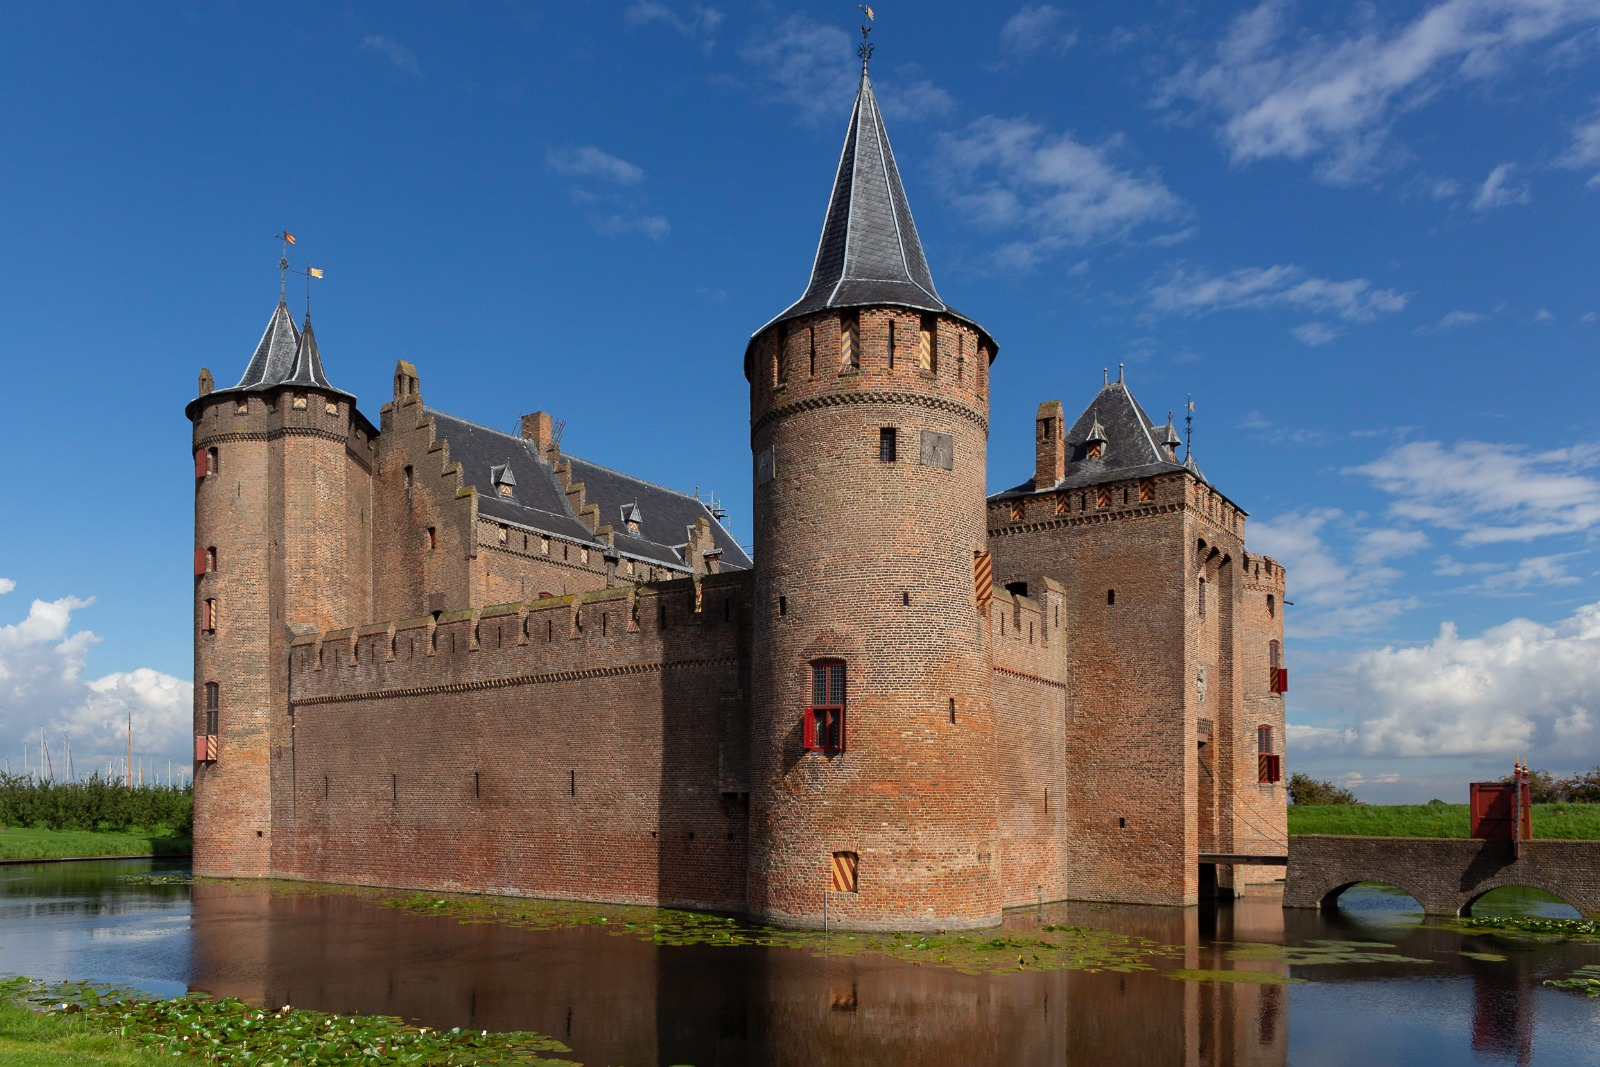 Muiderslot in North Holland, the Netherlands. Photo by David Cenzer.